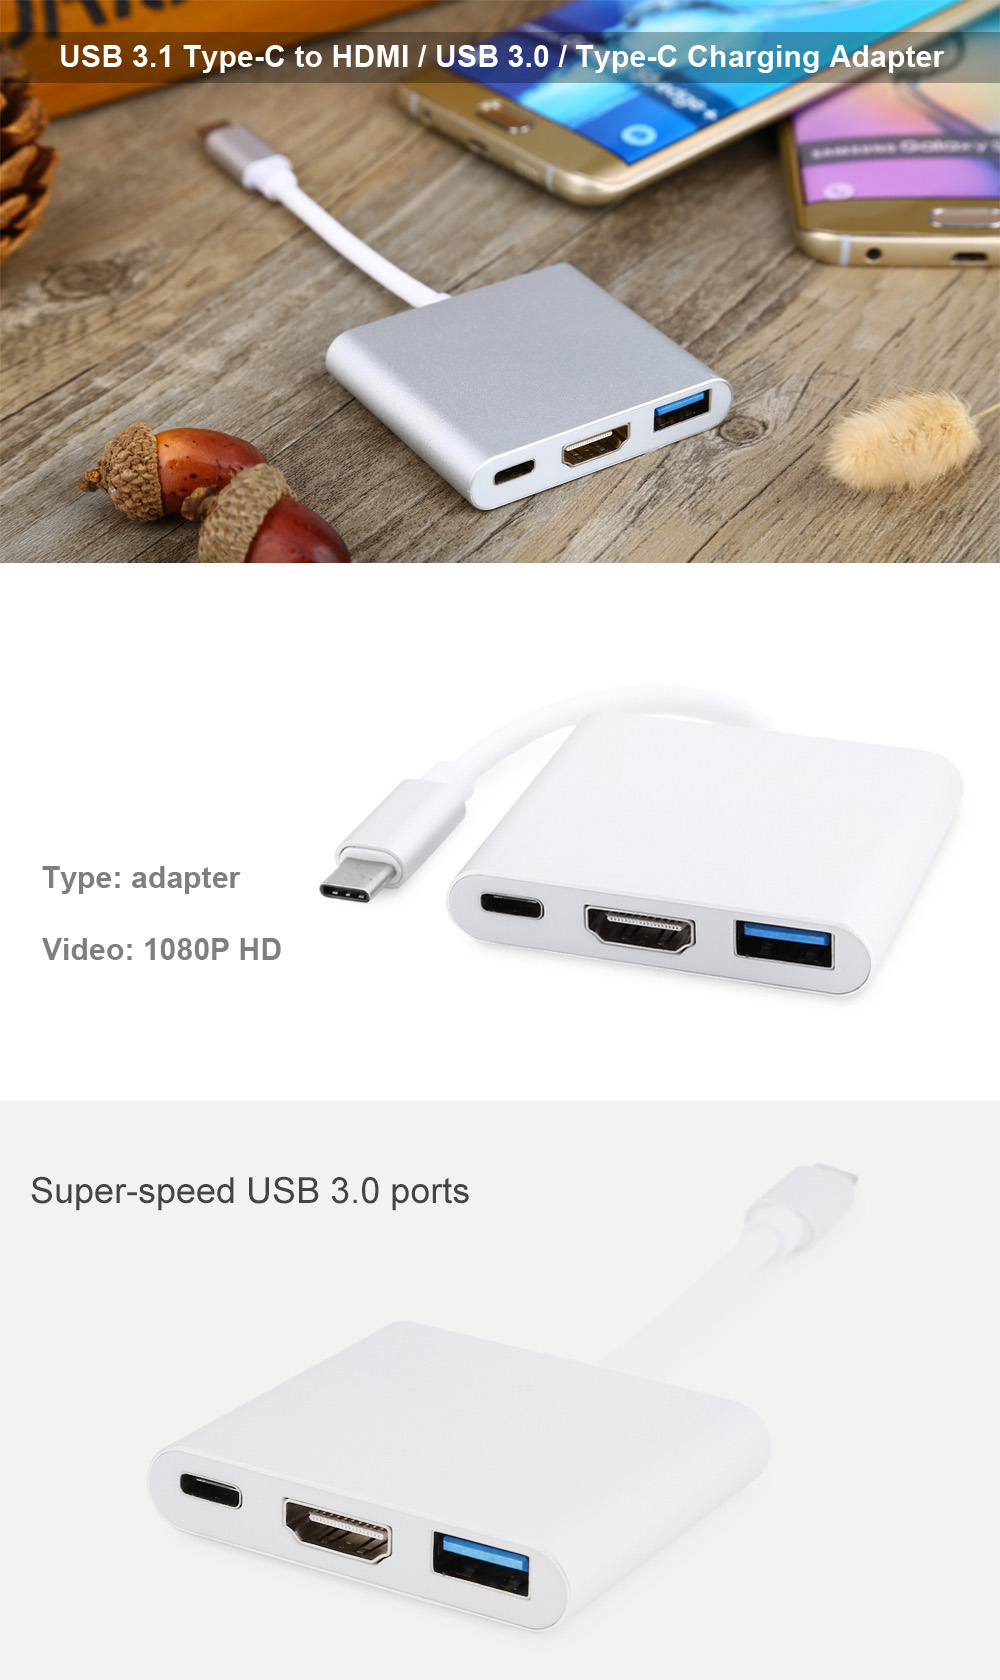 USB 3.1 Type-C Male Connector to HDMI / USB 3.0 / Type-C Charging Port Adapter